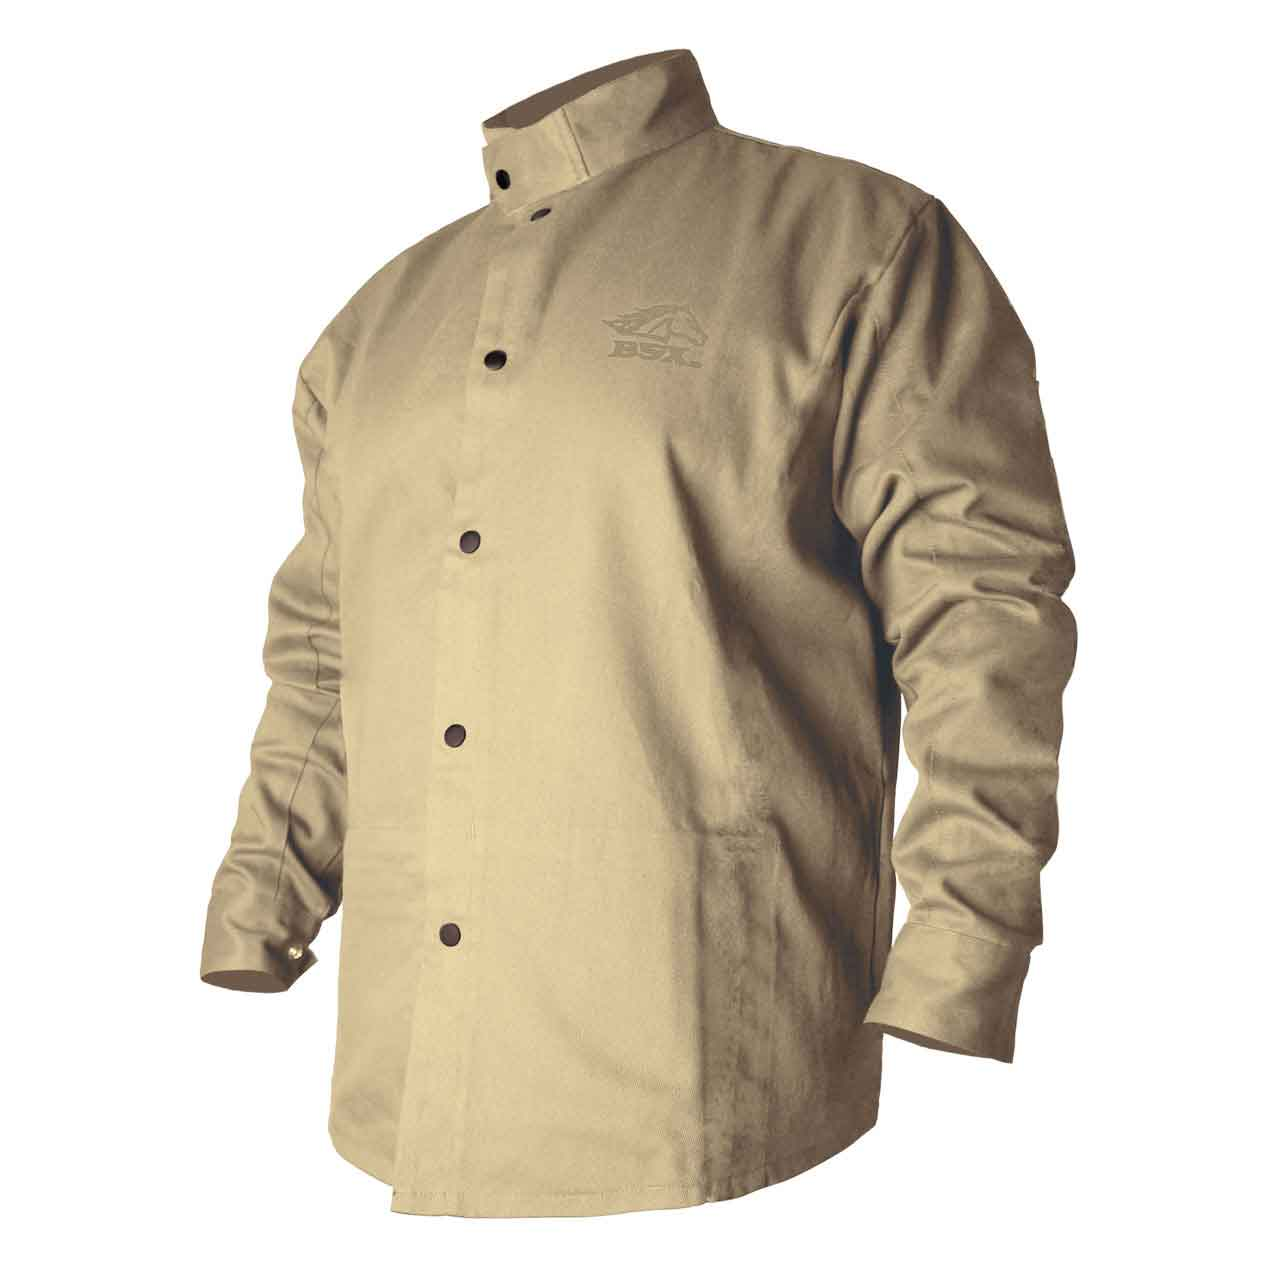 Black Stallion BSX BXTN9C Khaki Fire Resistant Cotton Welding Jacket, Medium